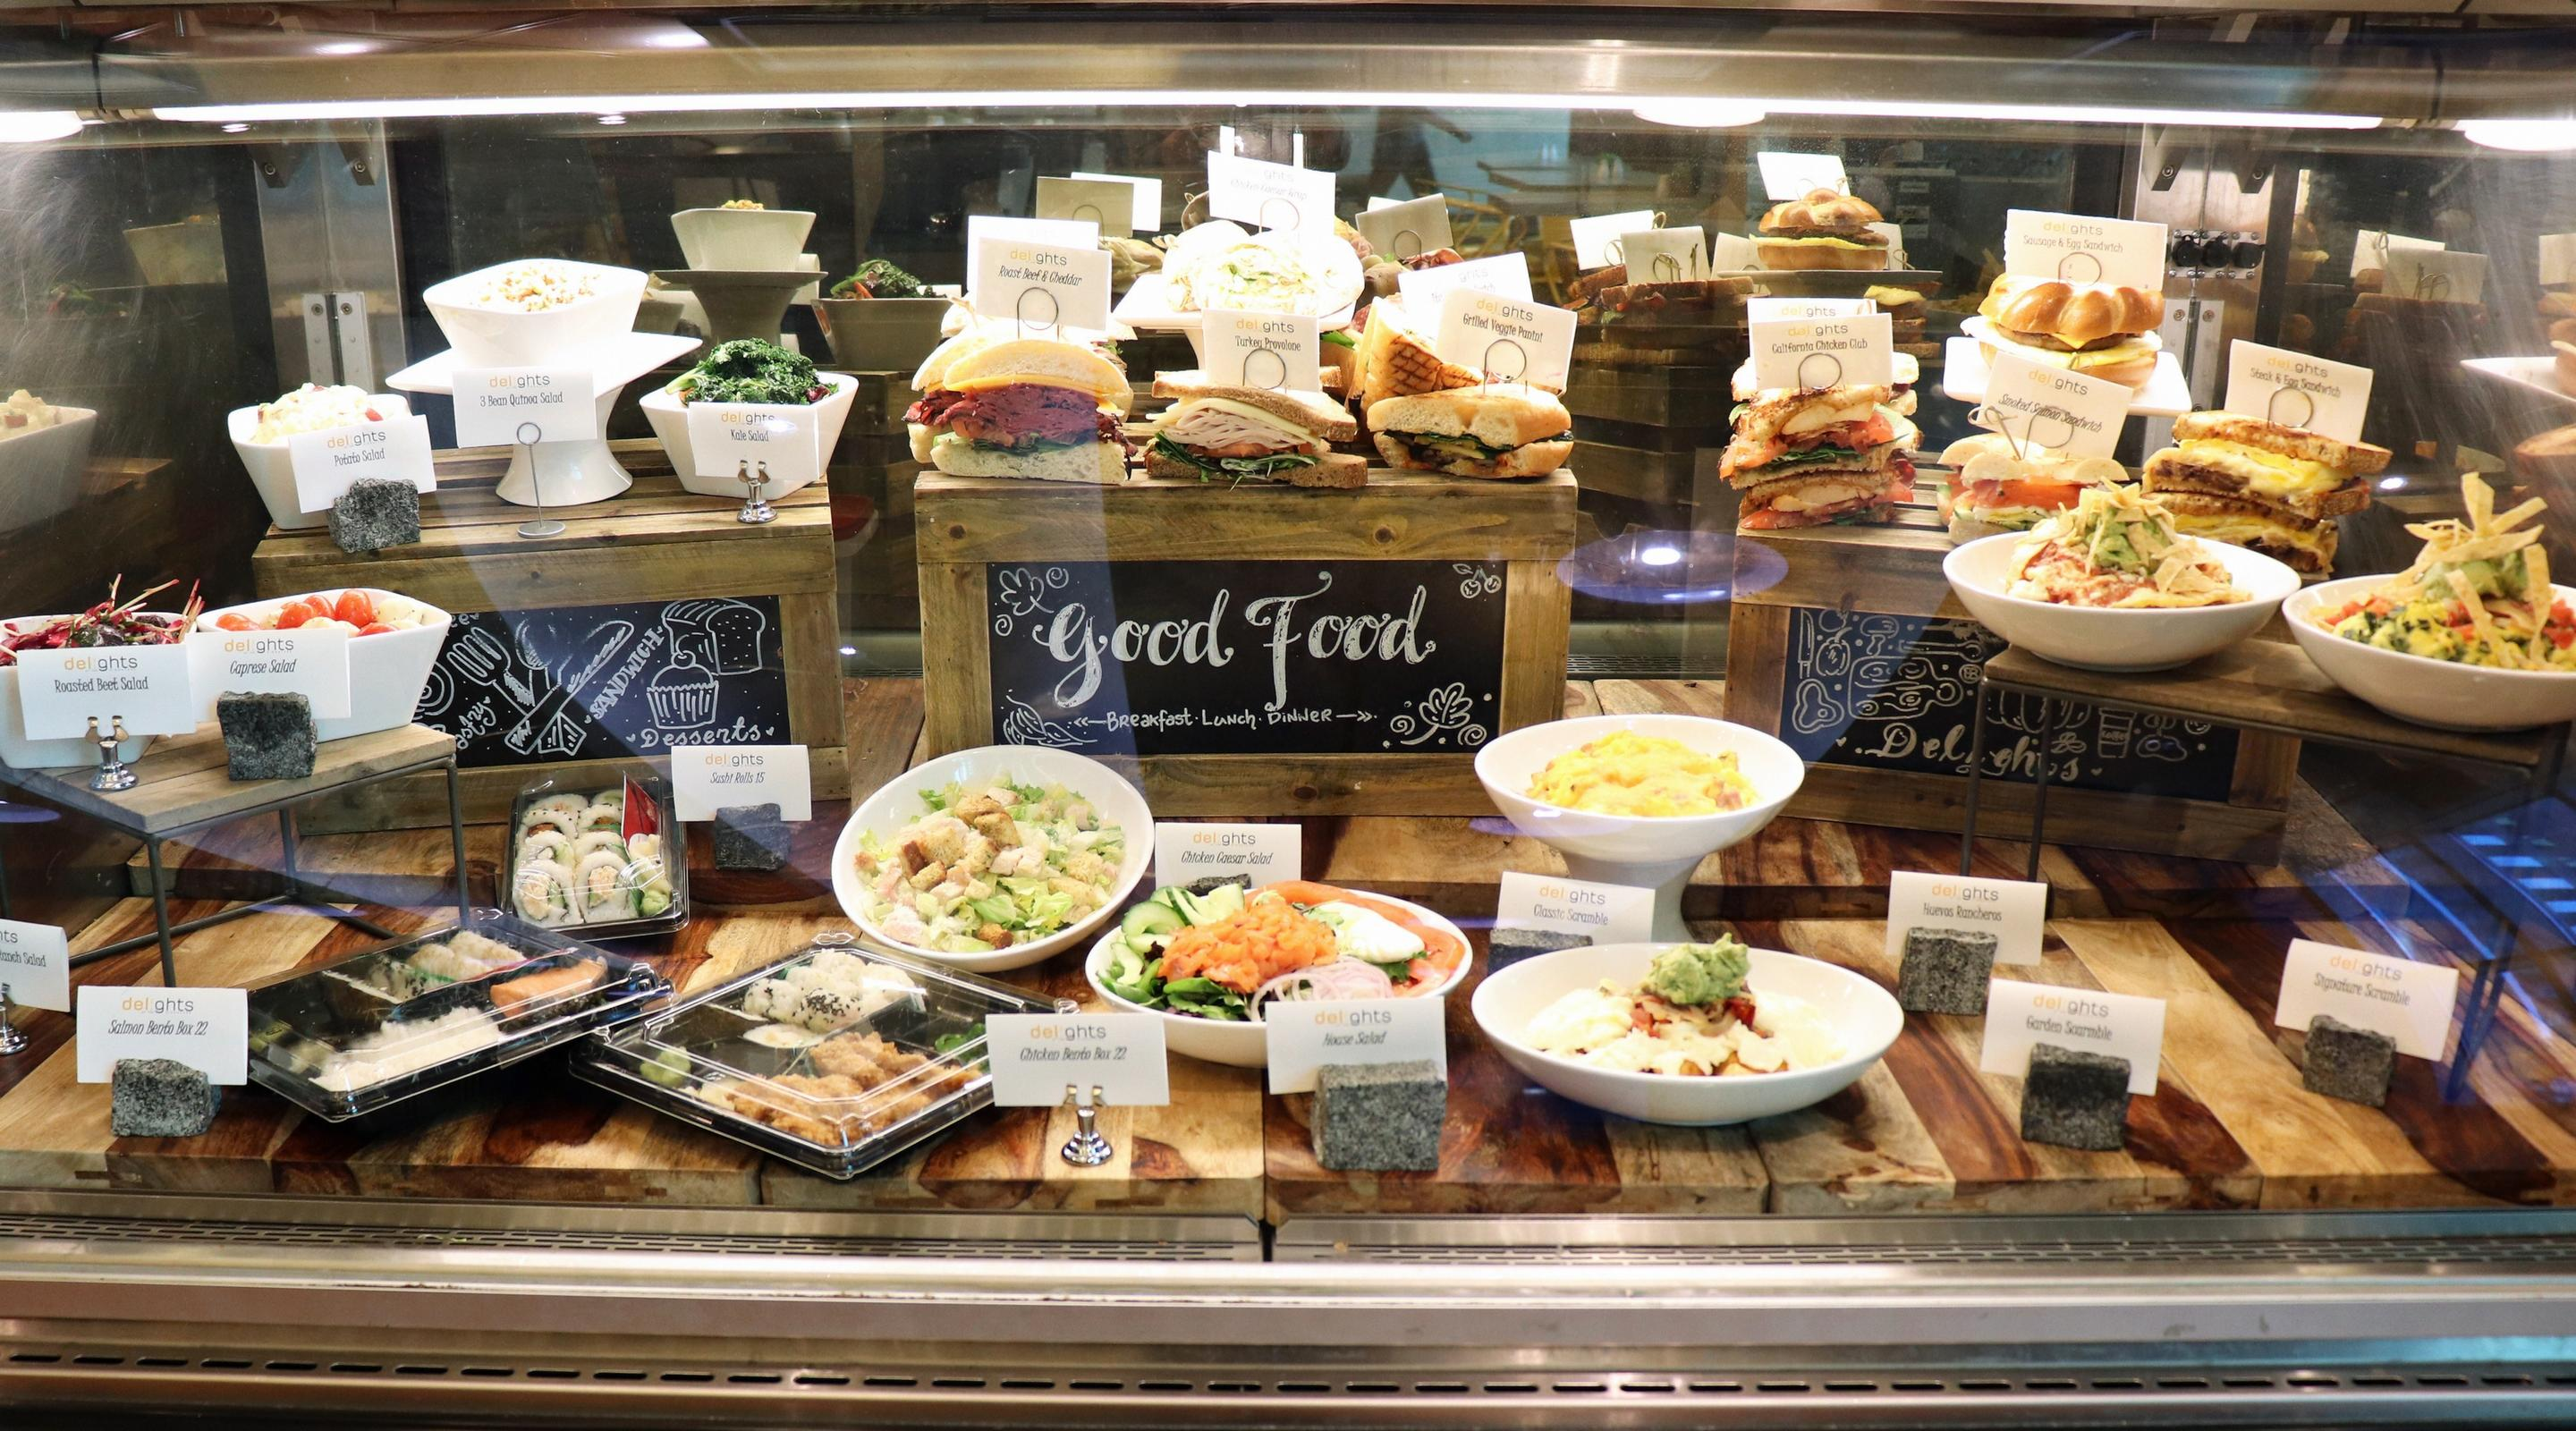 Variety of food display at Delights.